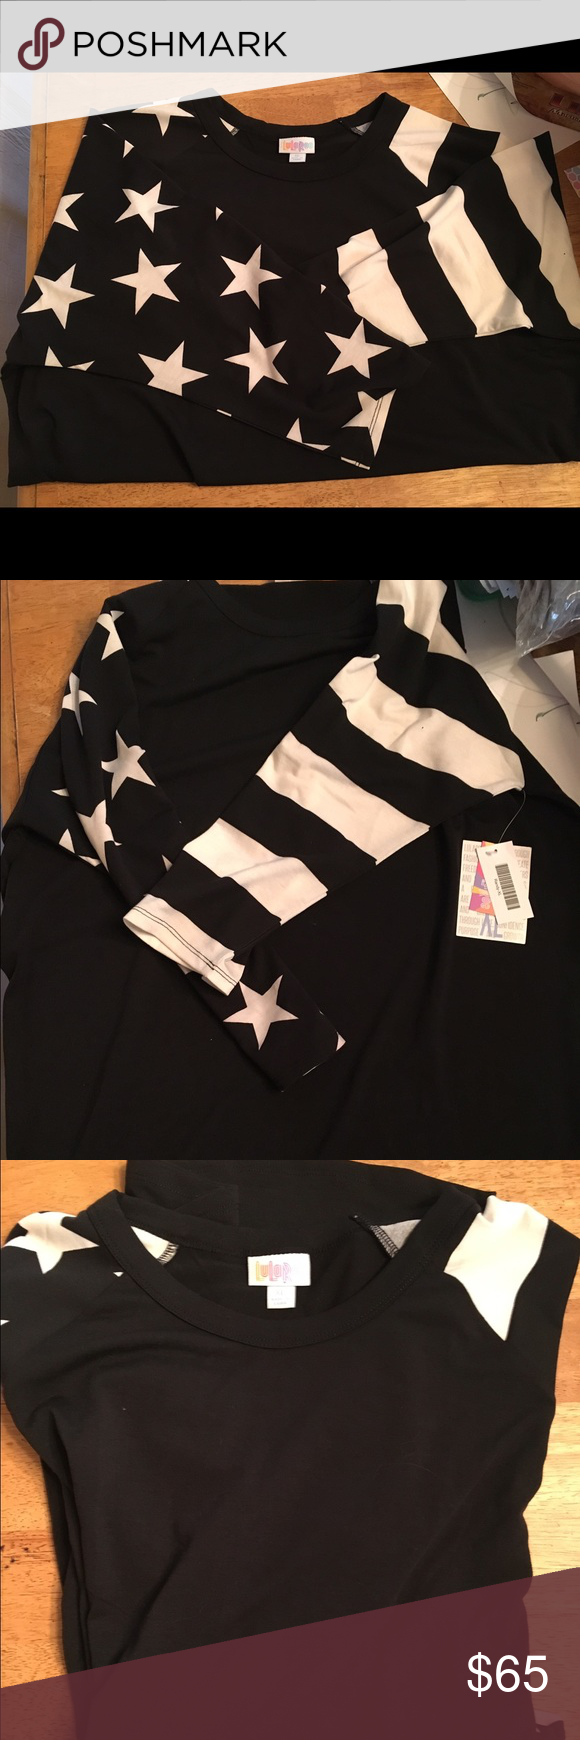 LulaRoe XL black stars and stripe Randy New with tags. Tried on. Runs a little small. Would fit a normal LLR large or a small XL. It's a little too smug for me. I love it but need a size up. Has a small black dot on the sleeve. It is a manufacturer defect. Most people wouldn't notice but I'm OCD about stuff like that. No returns. By purchasing you understand about the defect. LuLaRoe Tops